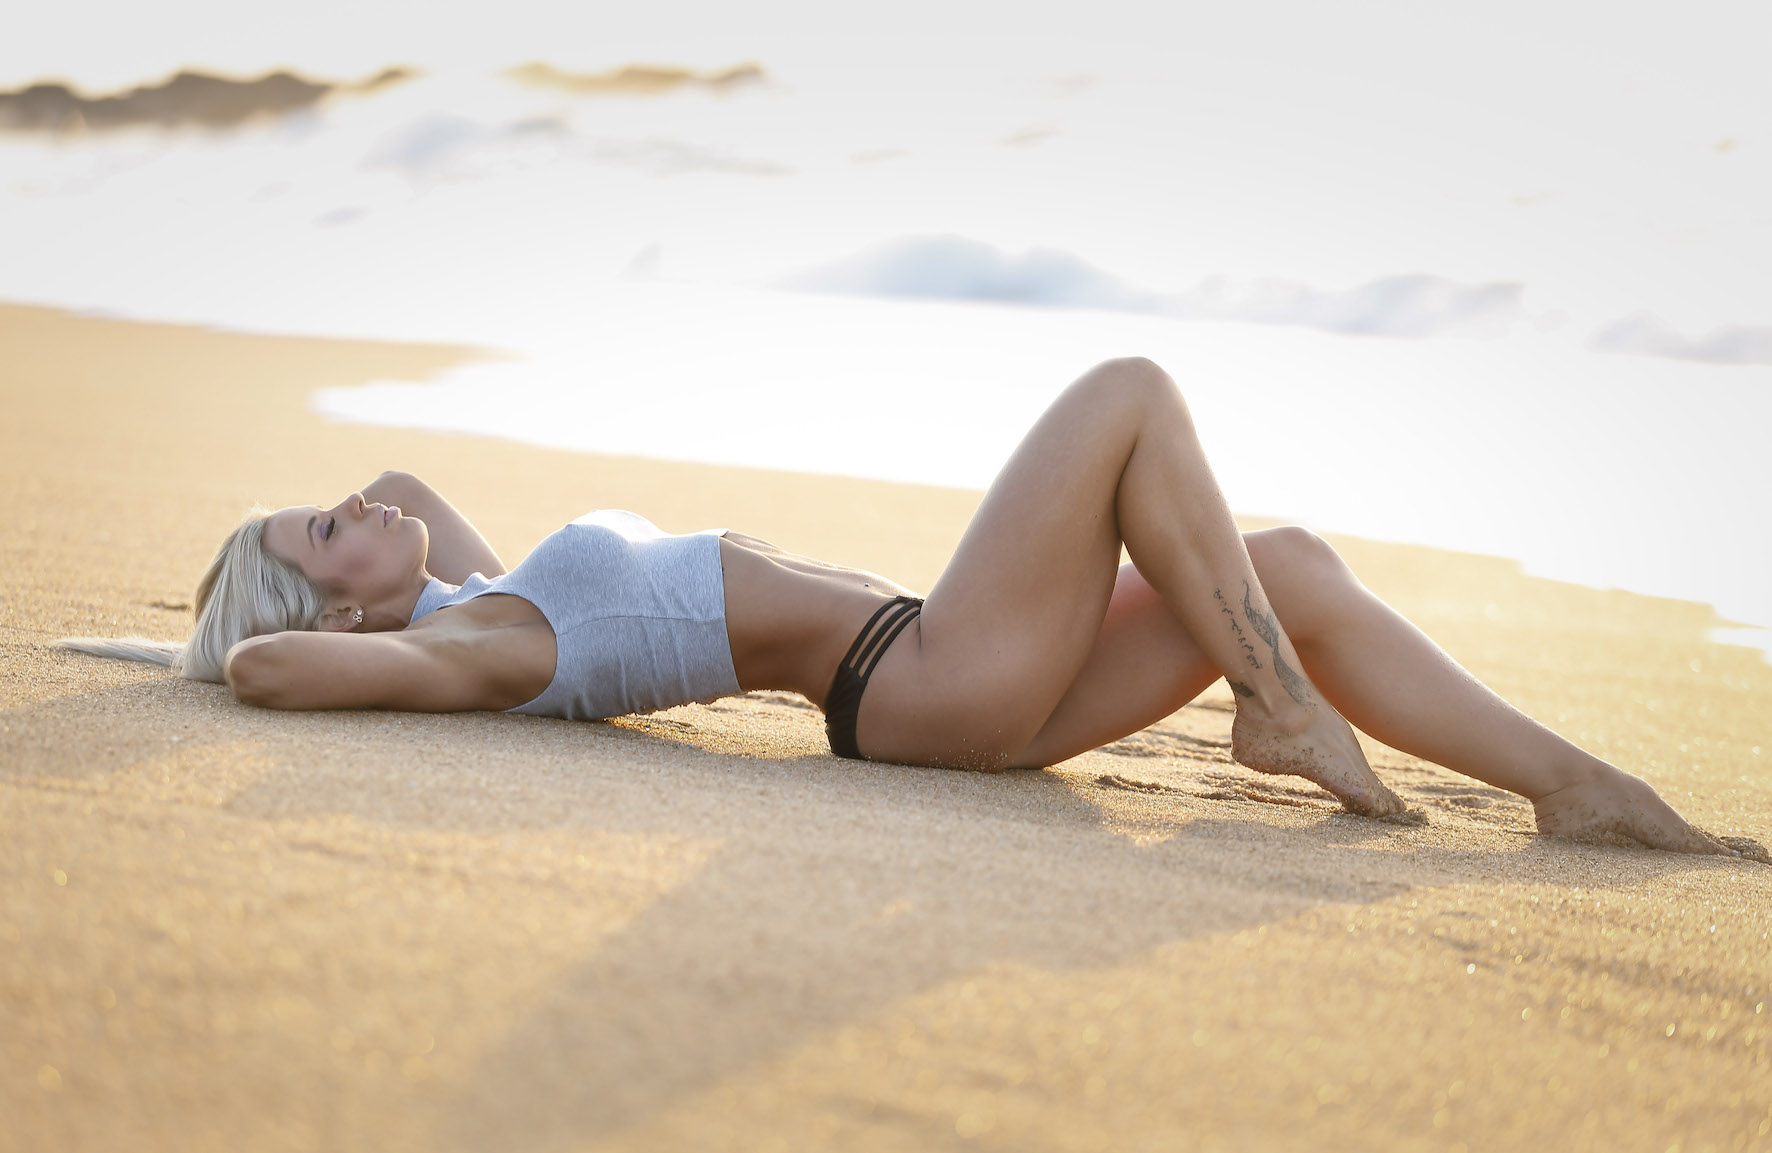 Meet Megan Jane Wesson as our LW Babe of the Week